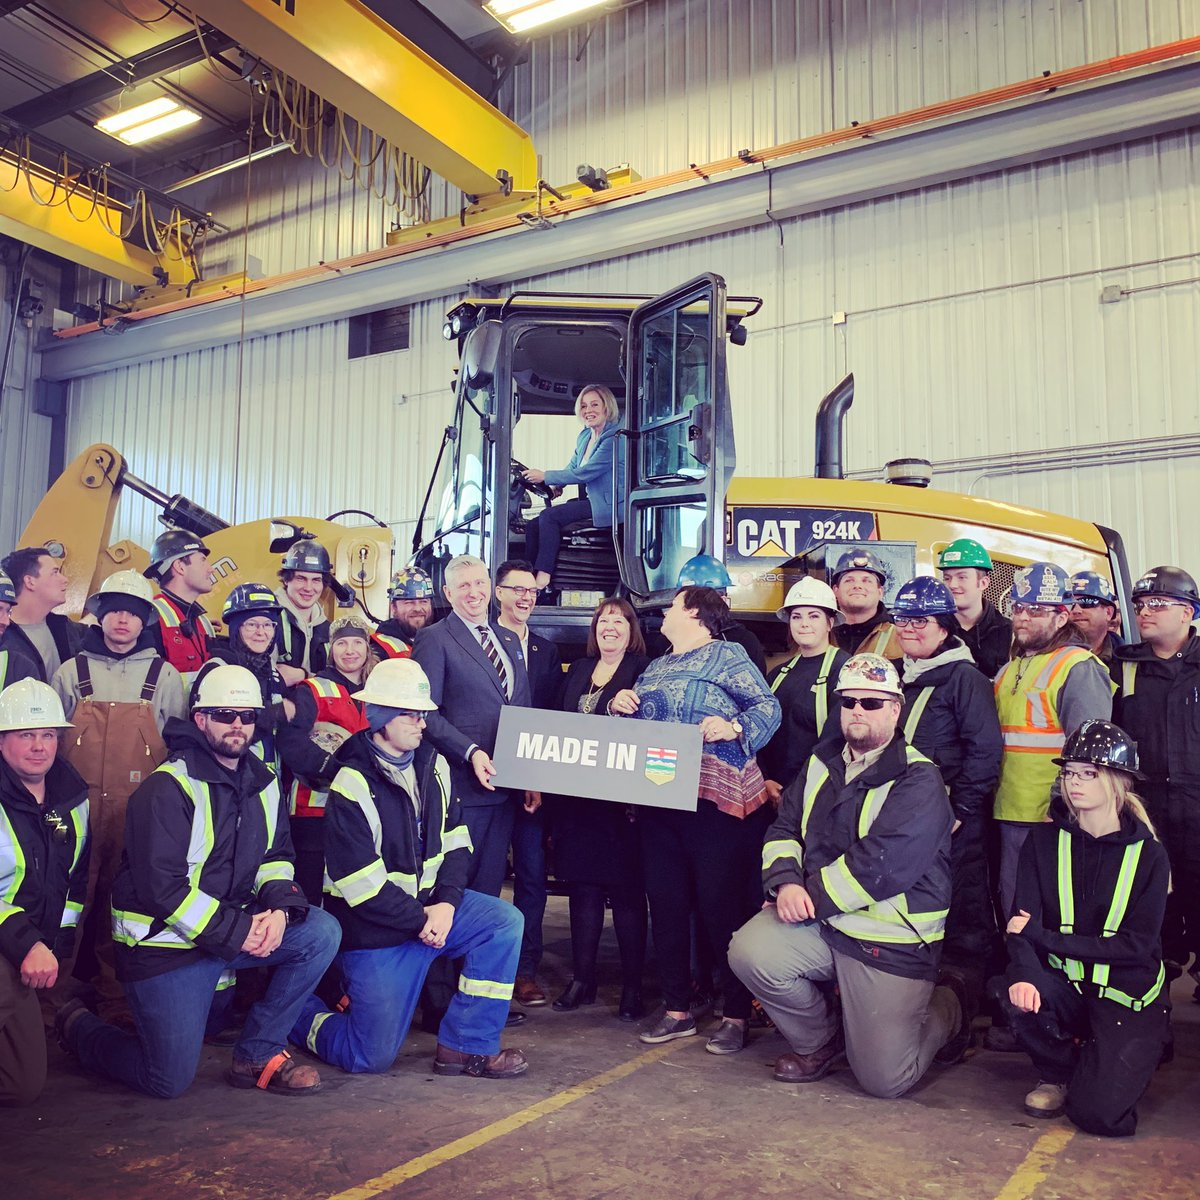 Today, Premier @RachelNotley and I announced that our #MadeInAlberta plan has unlocked a $2,000,000,000 private investment by Nauticol Energy in a methanol plant south of Grande Prairie that will add value to Alberta's energy resources & create good jobs. #ableg #abpoli #abenergy